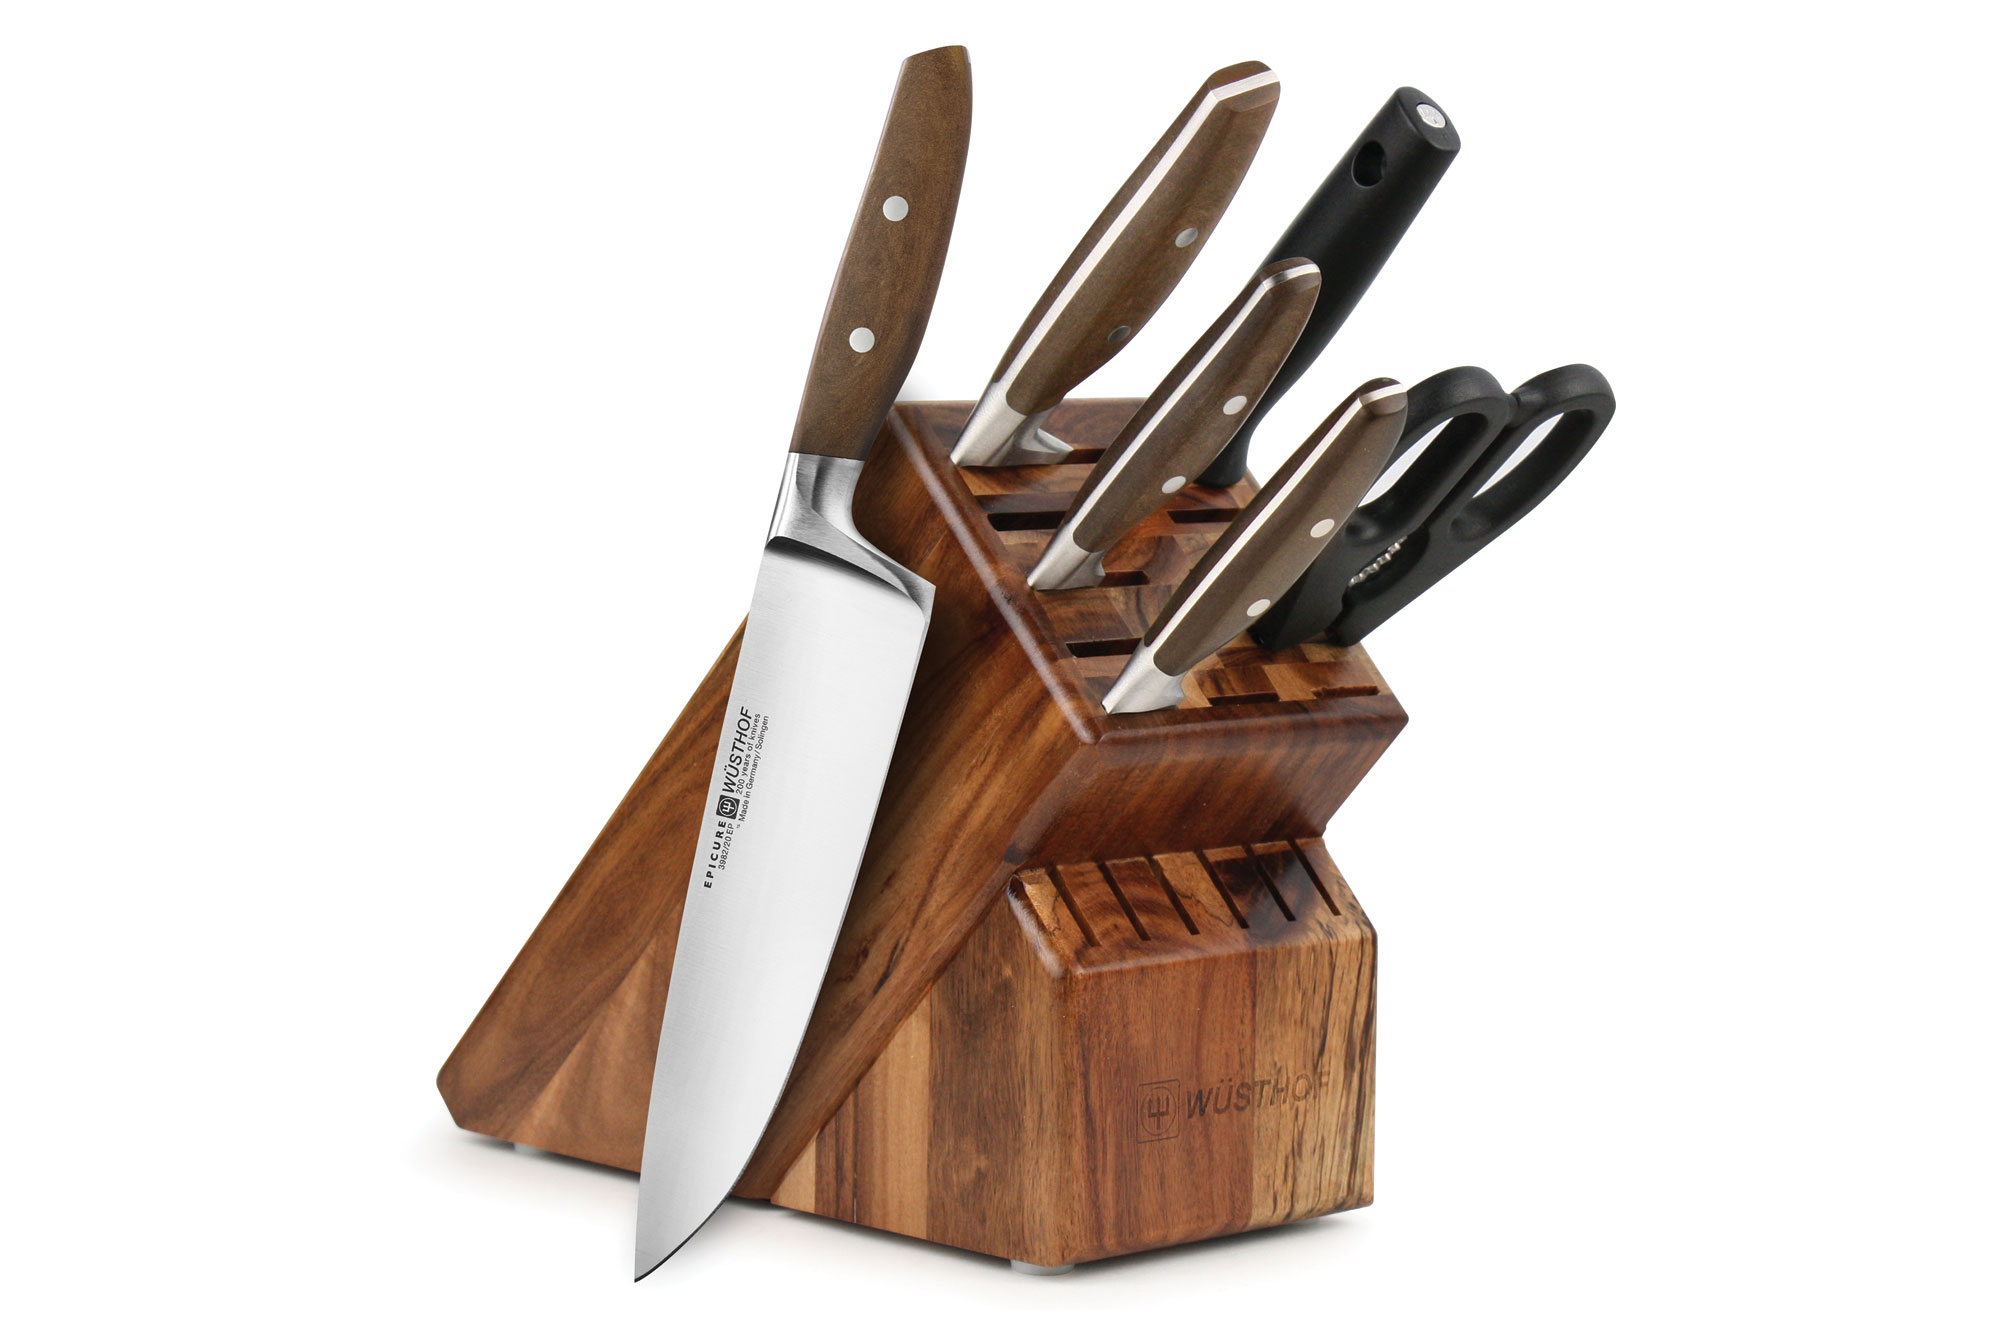 Wusthof Epicure Knife Set 7 Piece Acacia Block Wusthof Knives Cutlery And More